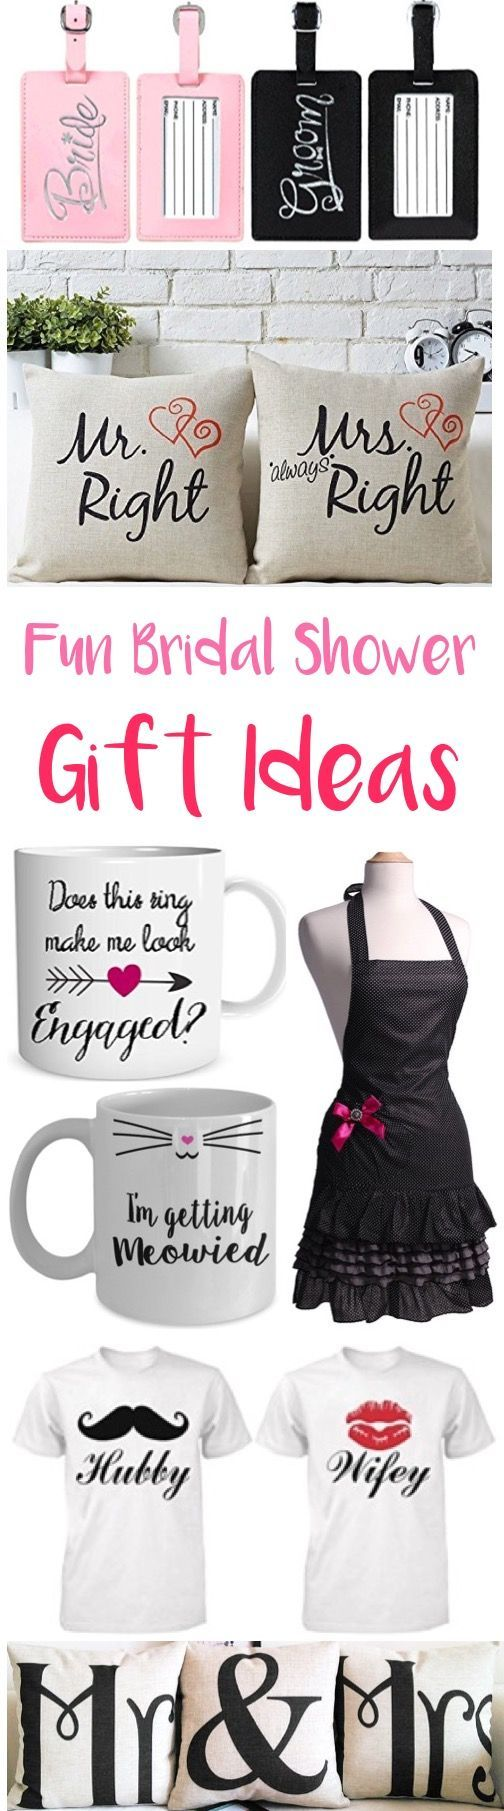 couples bridal shower gift ideas%0A     best DIY Wedding images on Pinterest   Budget wedding  Gifts for  teenage girls and Romance